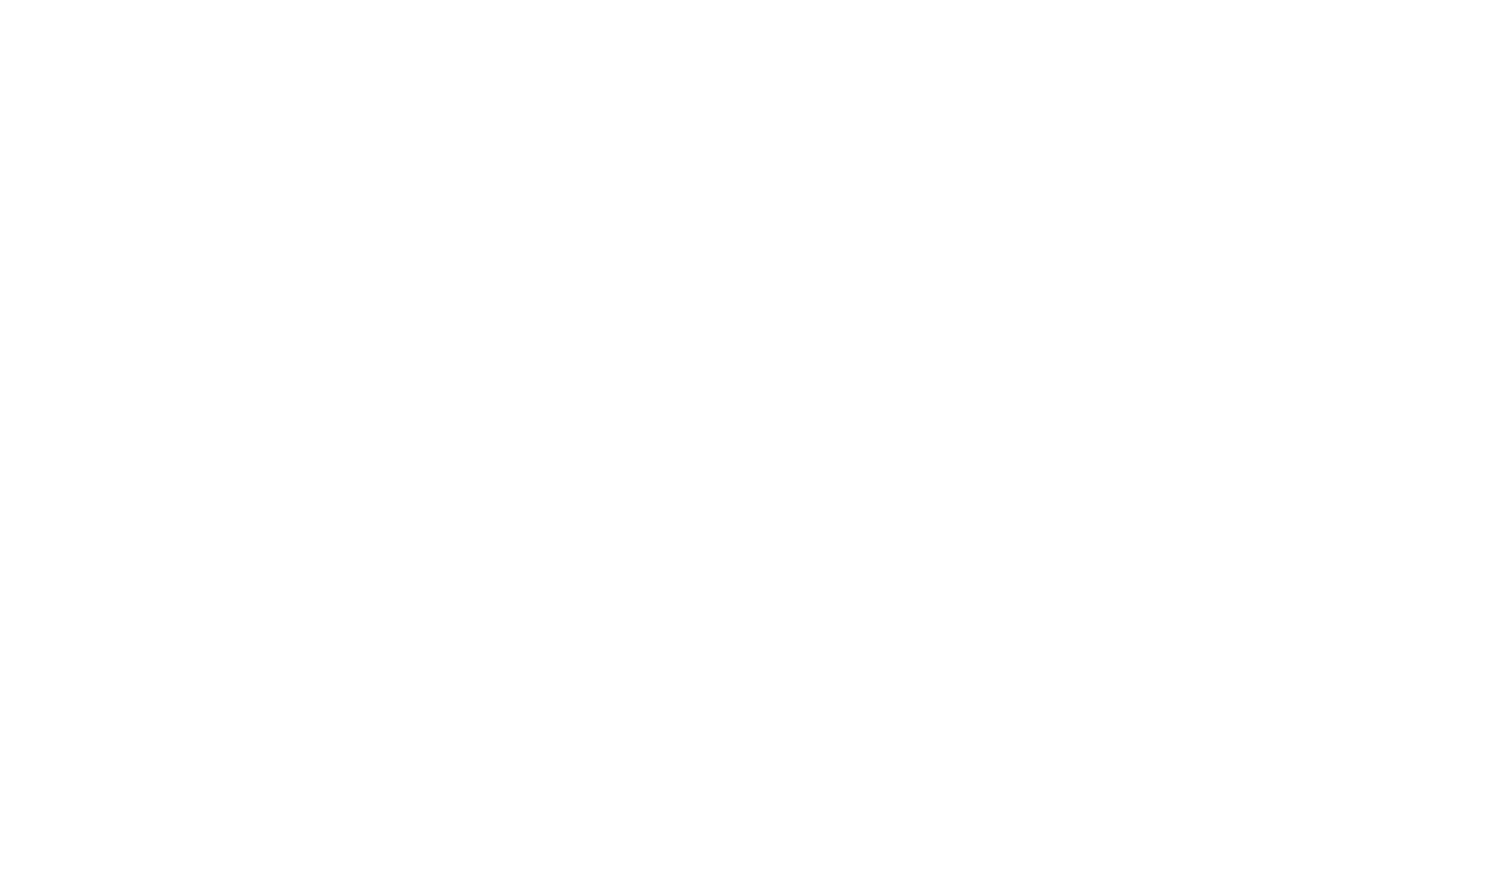 Zed Music Management